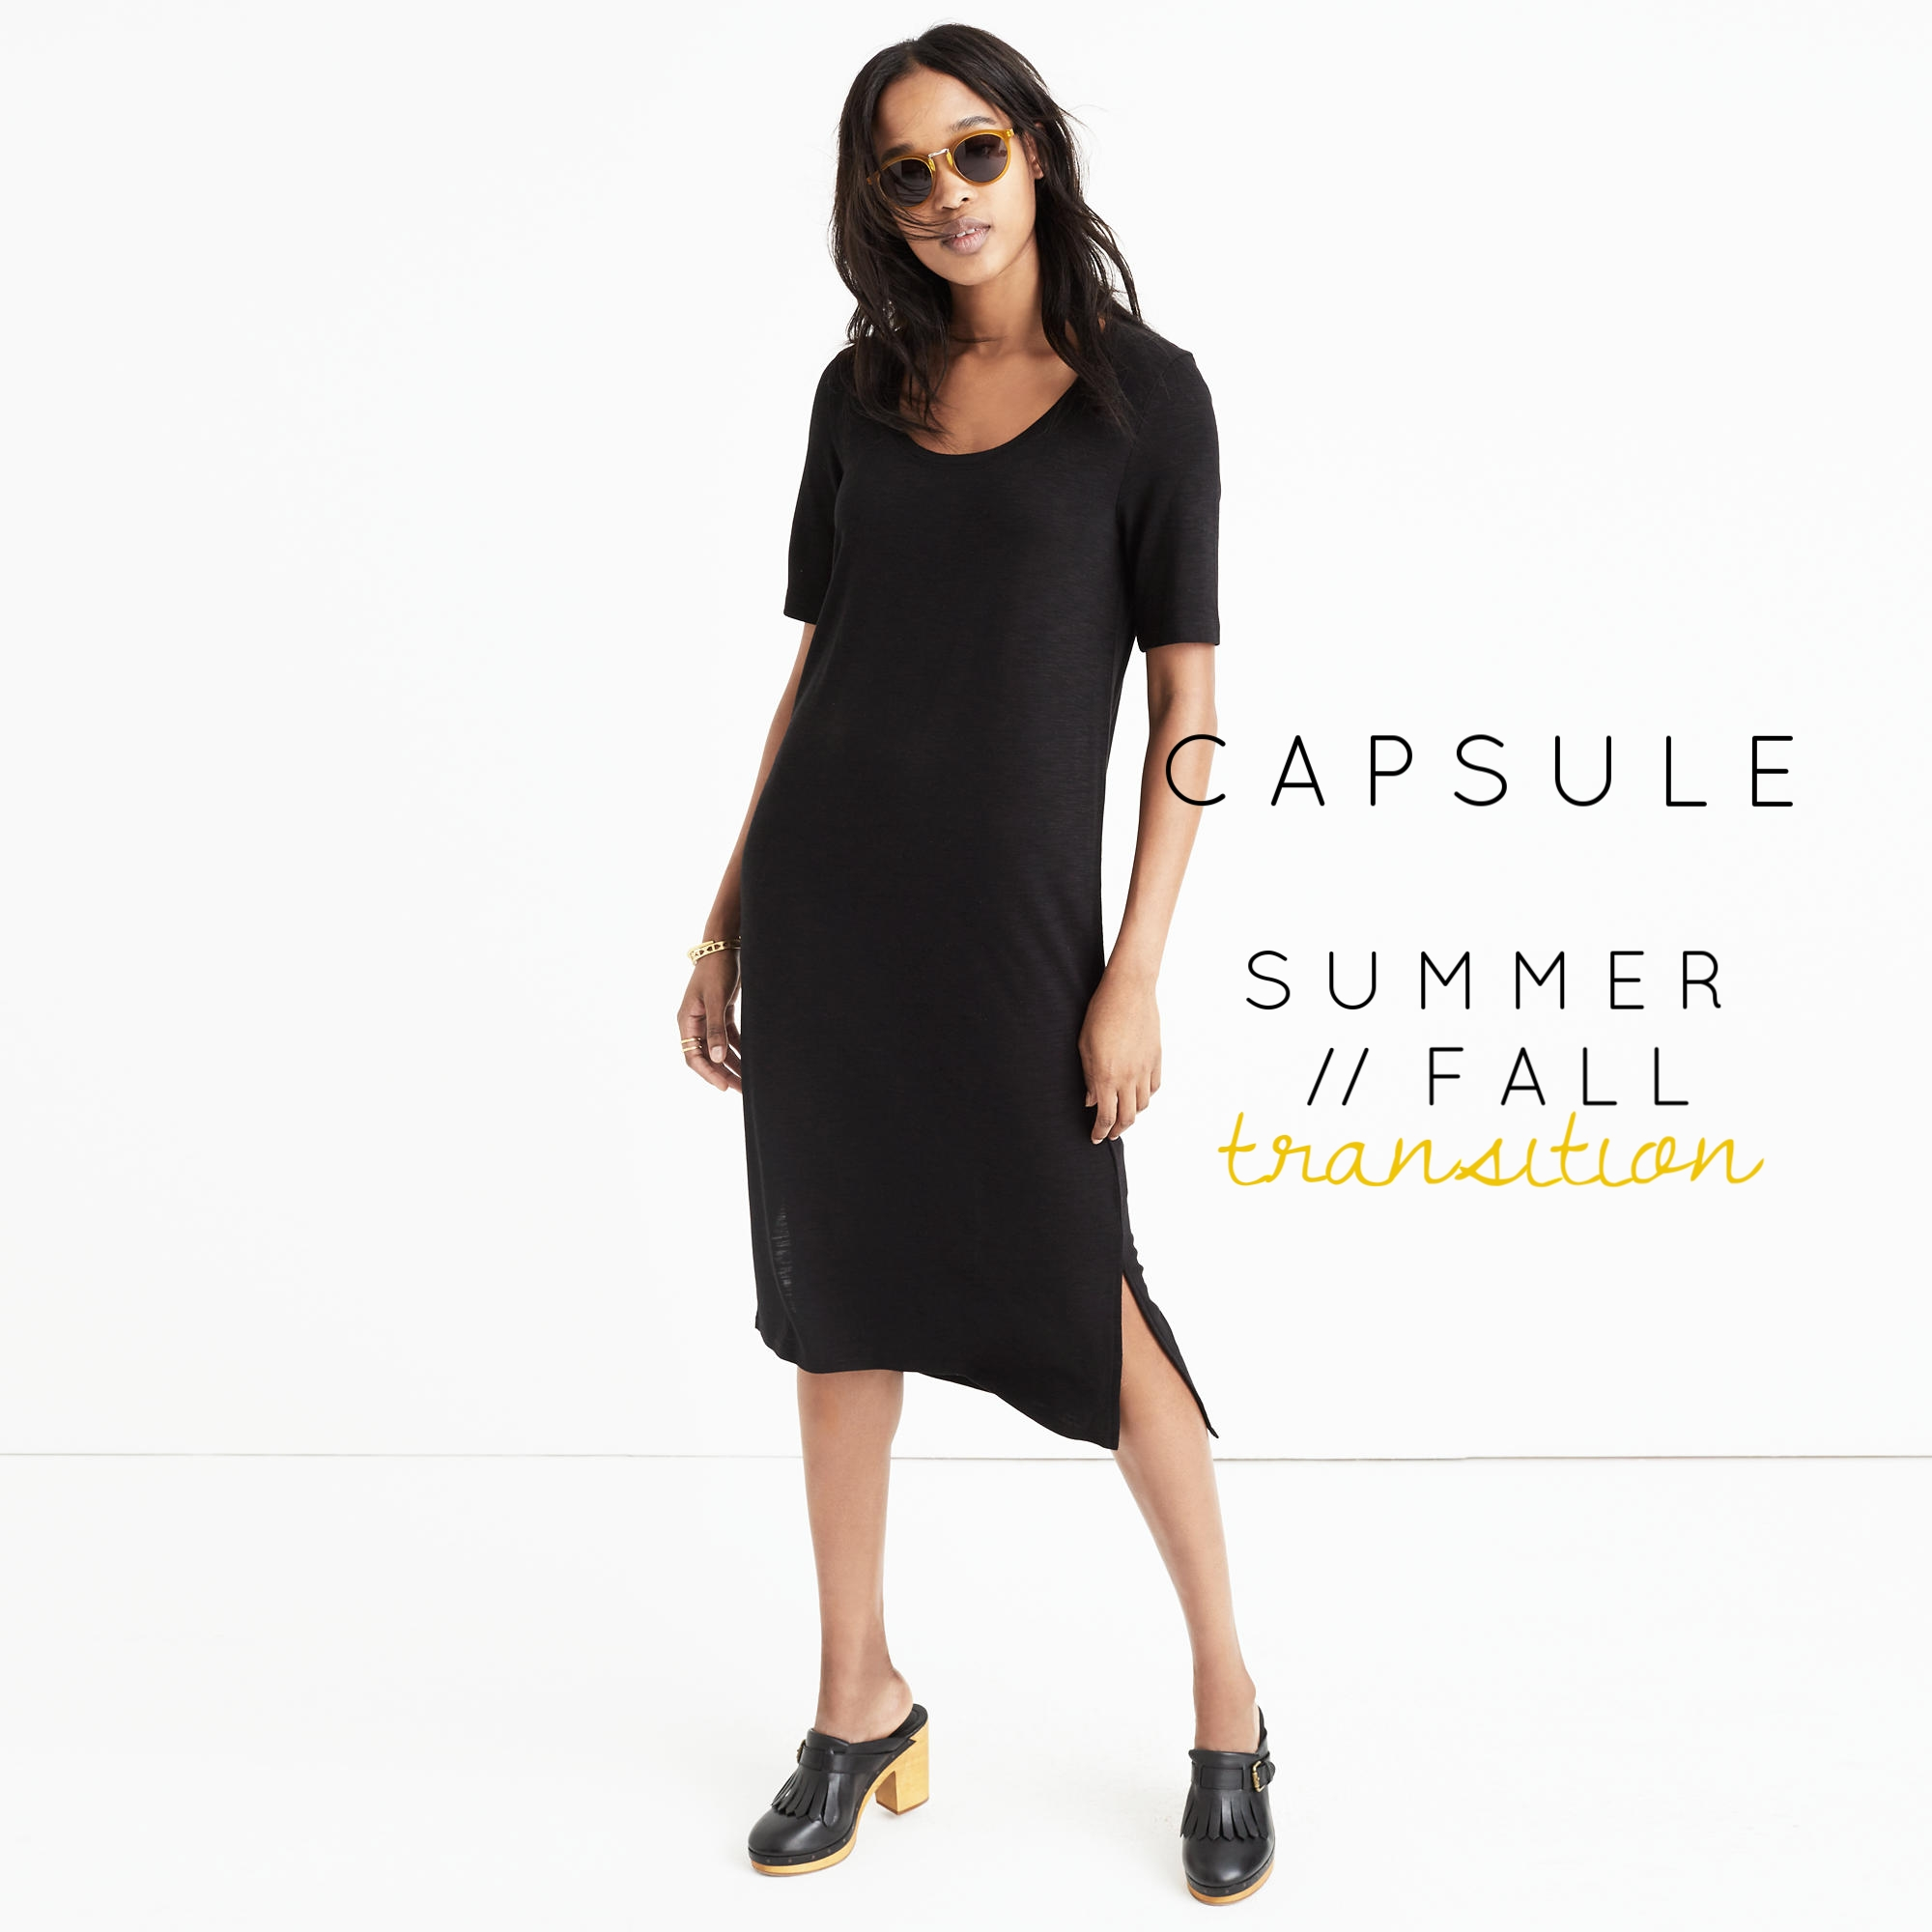 In the Market For: Transitional Capsule Pieces - The Pastiche